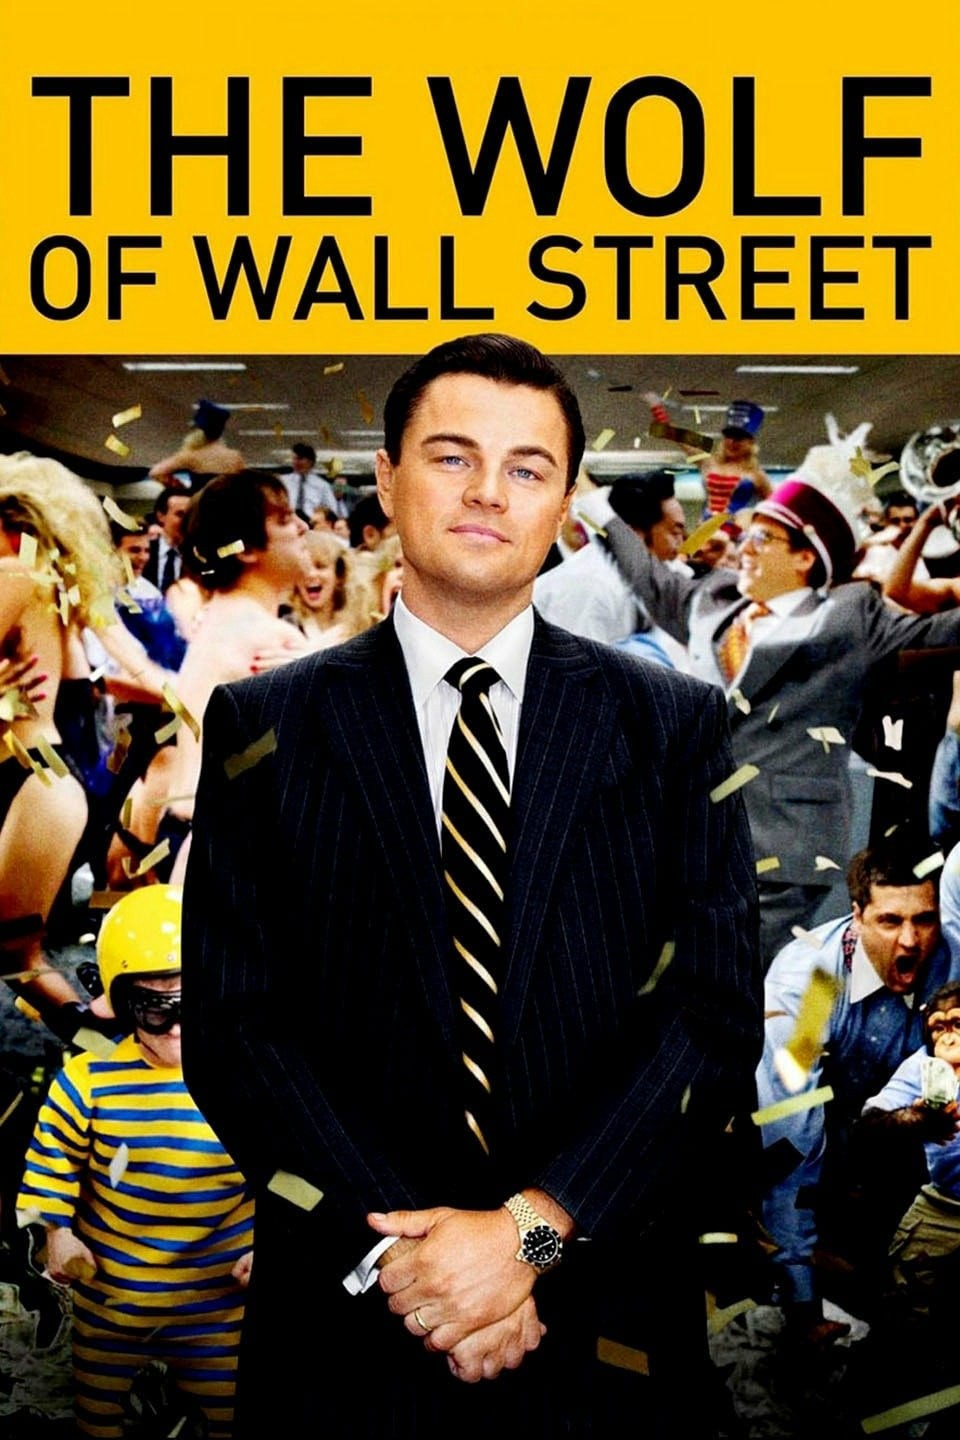 the wolf of wall street free online hd